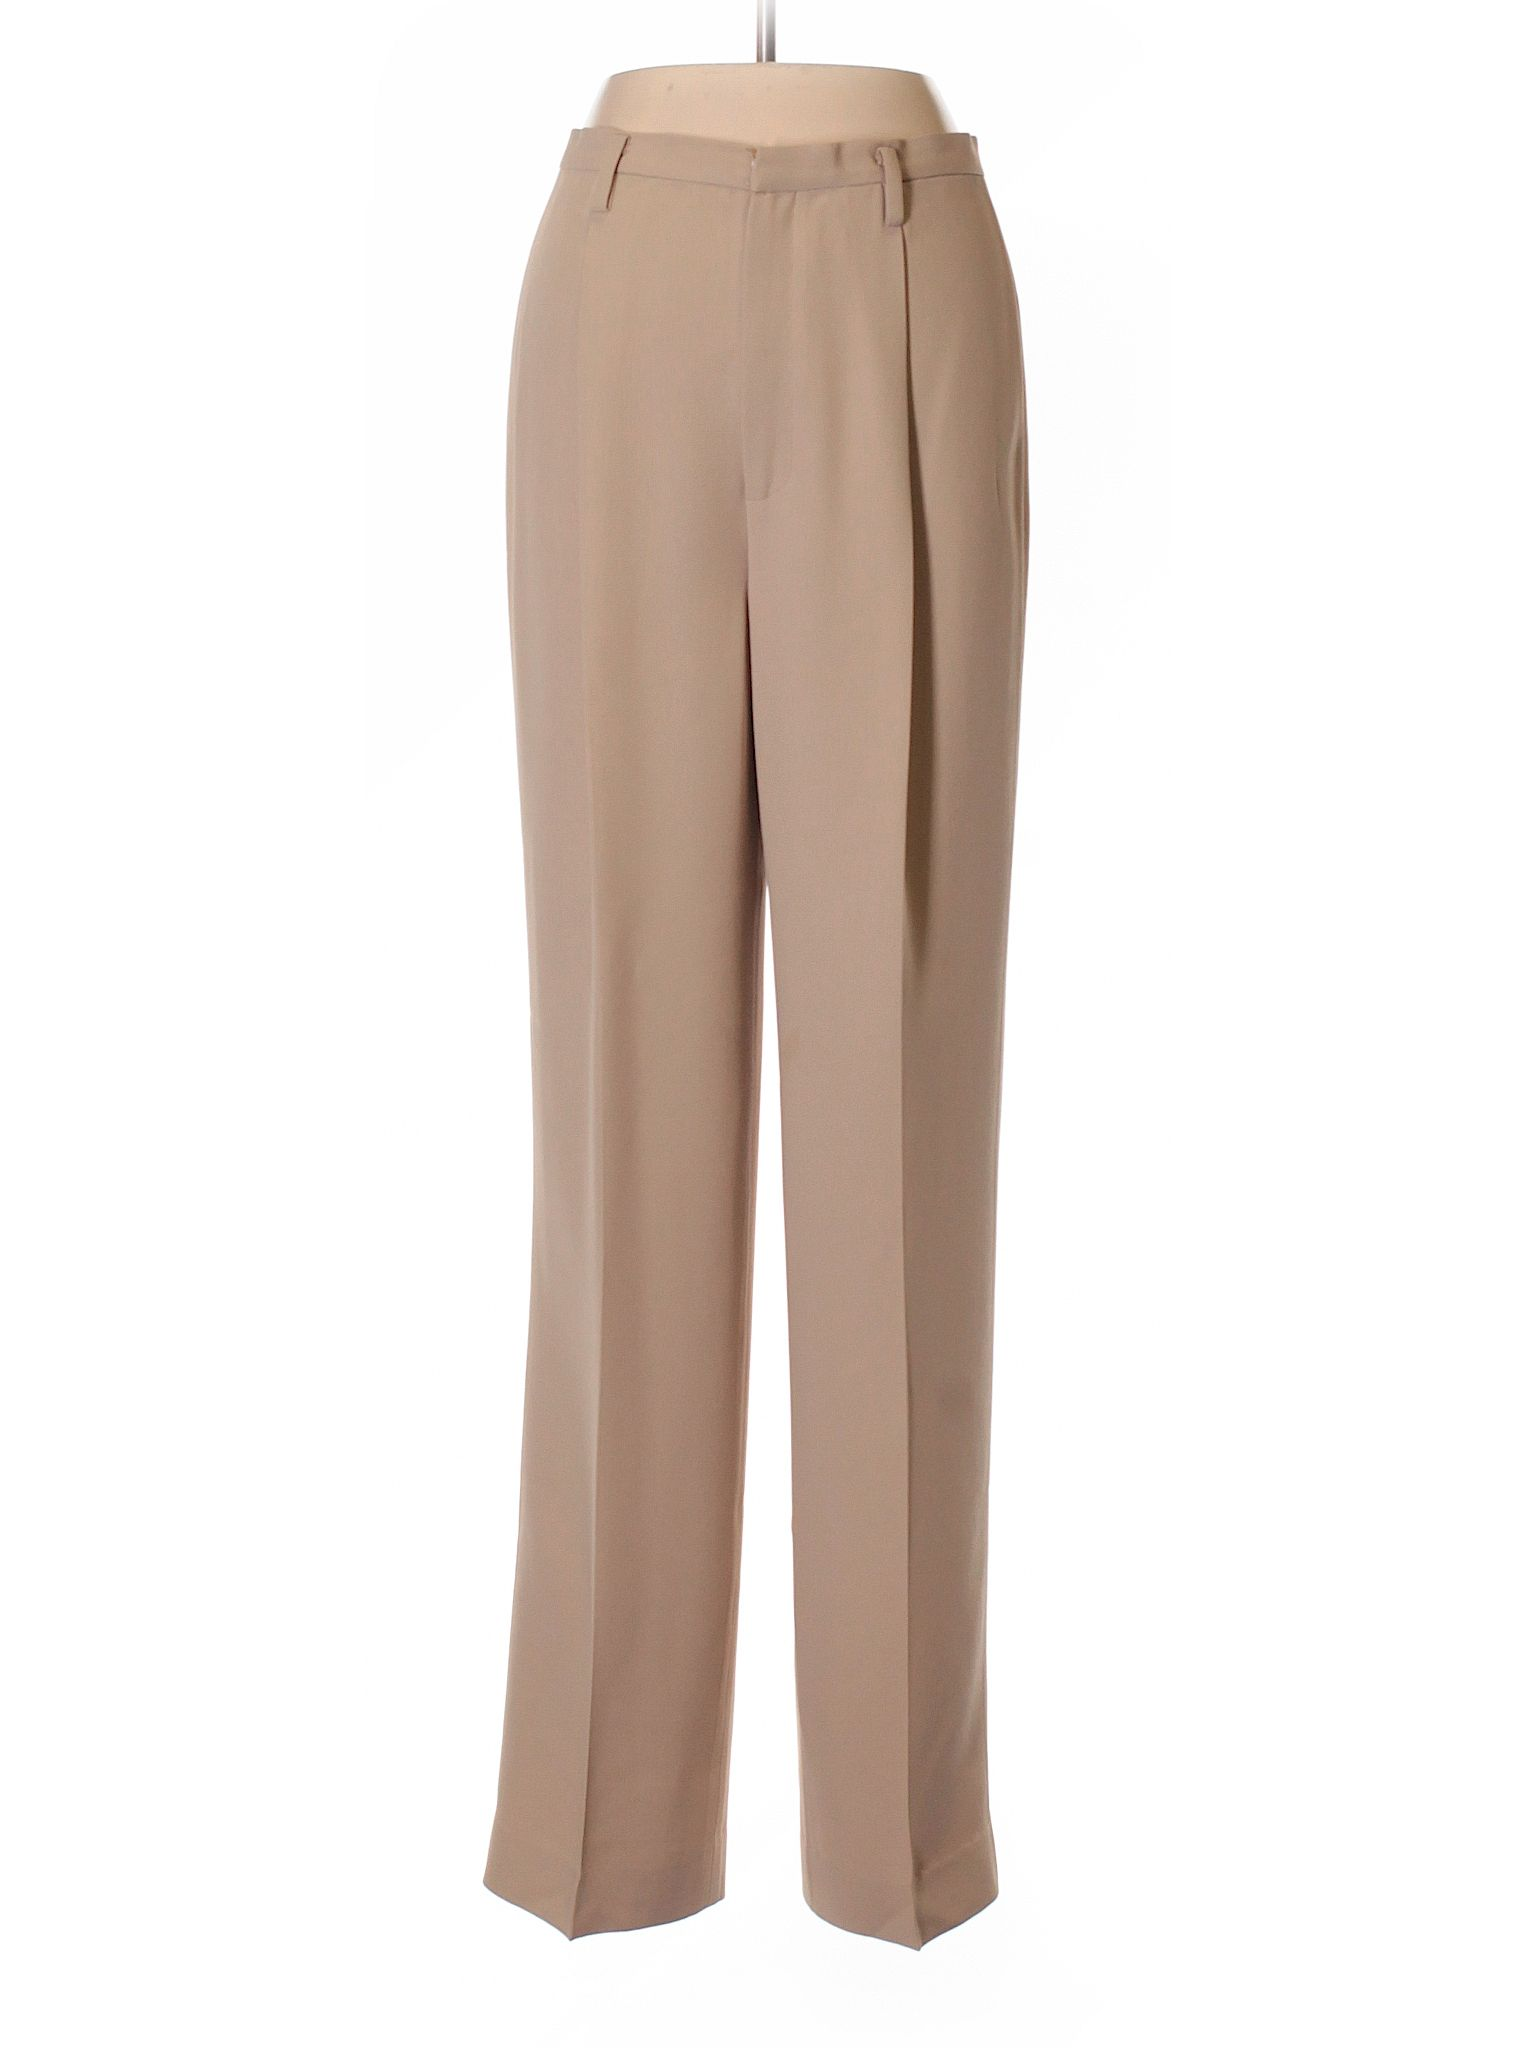 Linda Allard Ellen Tracy Dress Pants Size 2 00 Tan Women S Bottoms 39 99